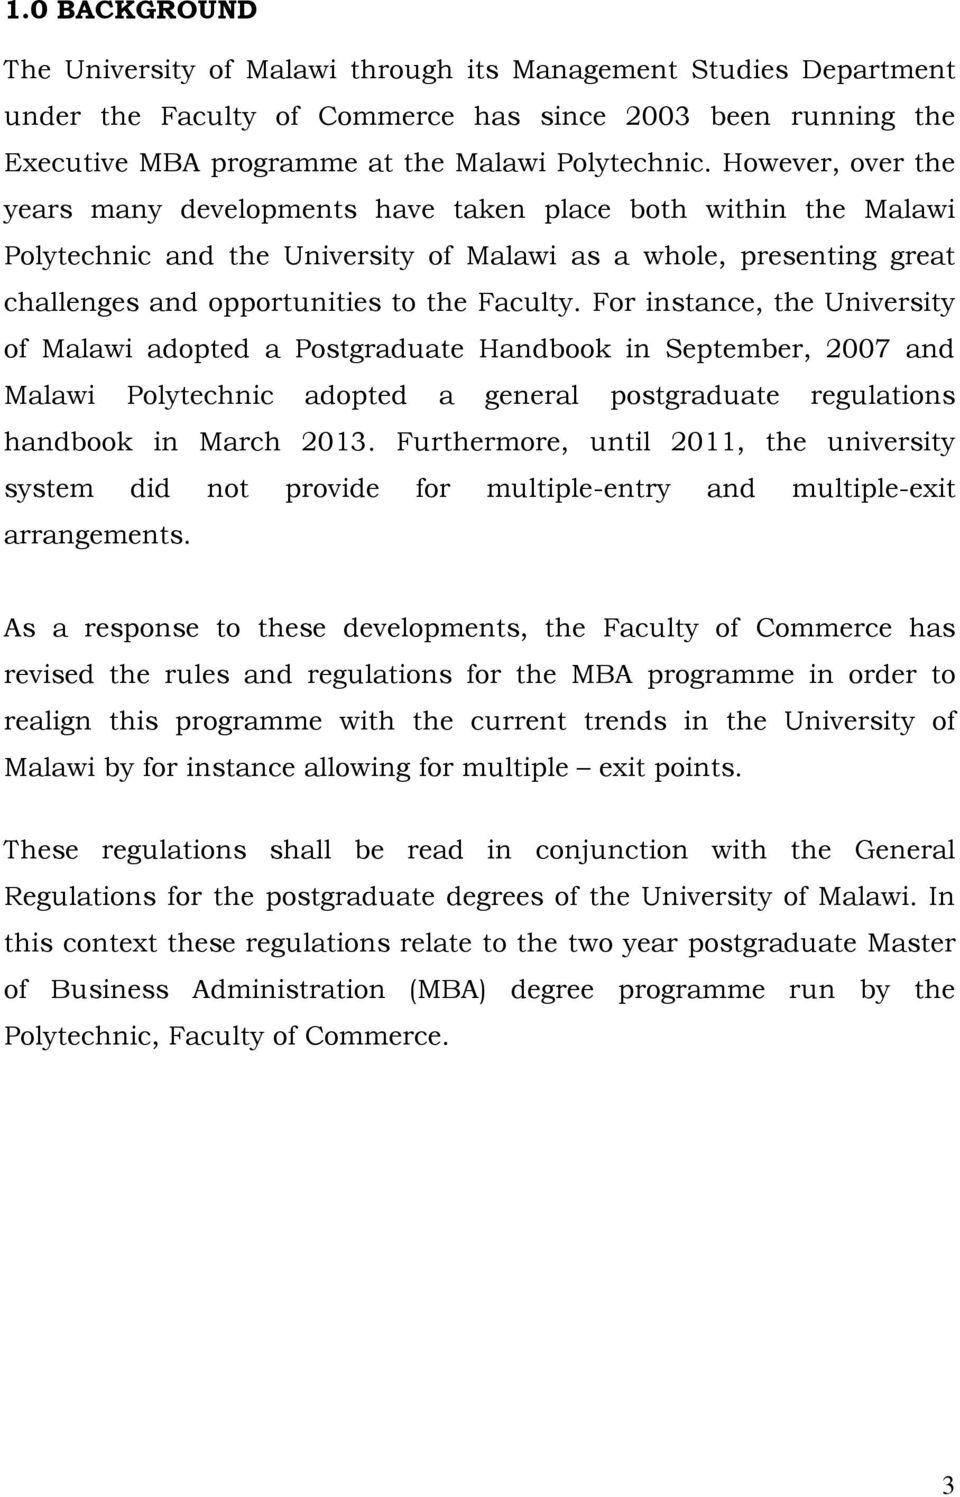 For instance, the University of Malawi adopted a Postgraduate Handbook in September, 2007 and Malawi Polytechnic adopted a general postgraduate regulations handbook in March 2013.